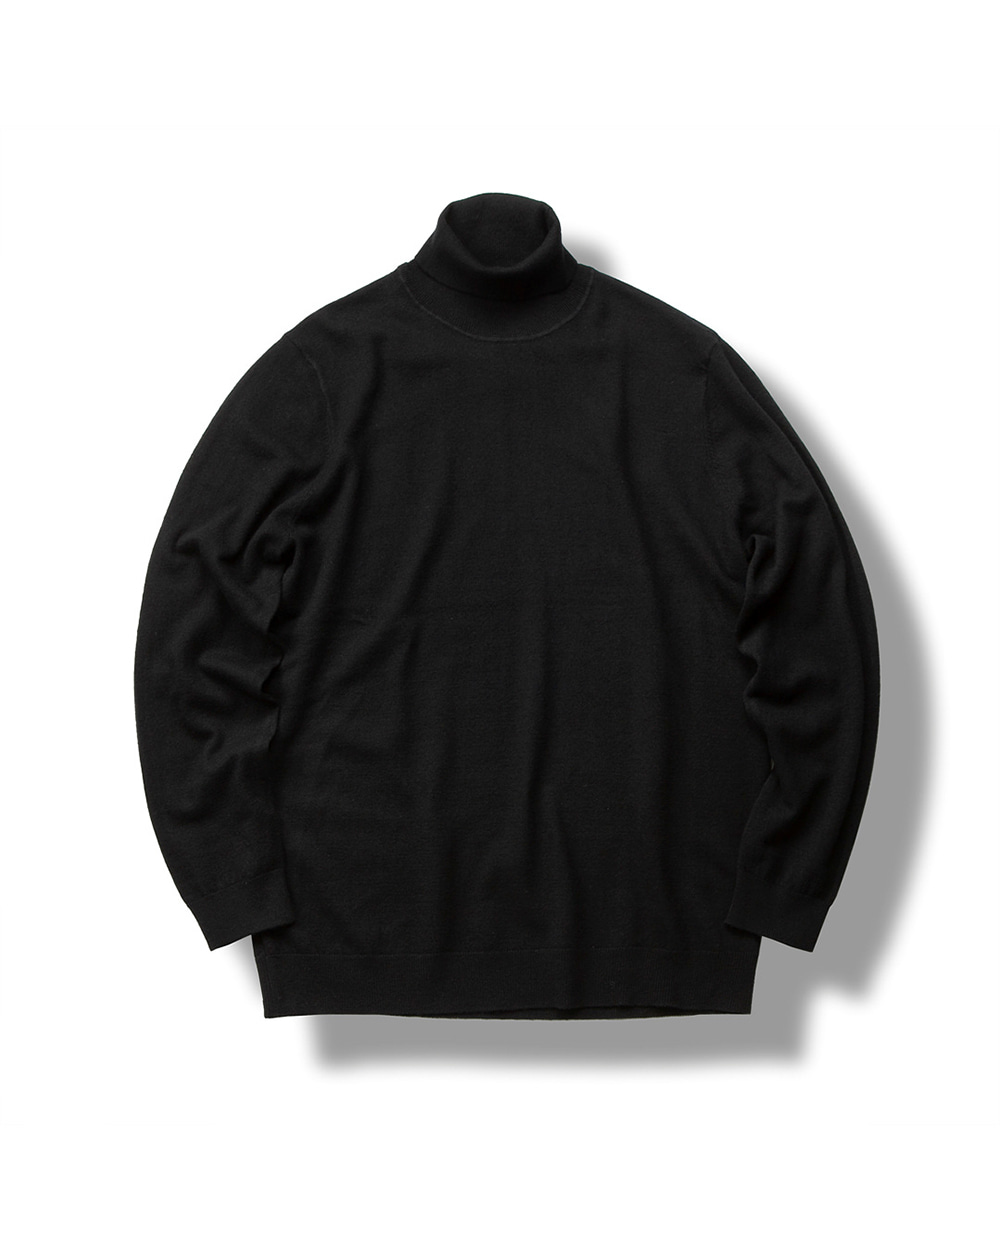 MERINO WOOL TURTLENECK SWEATER BLACK